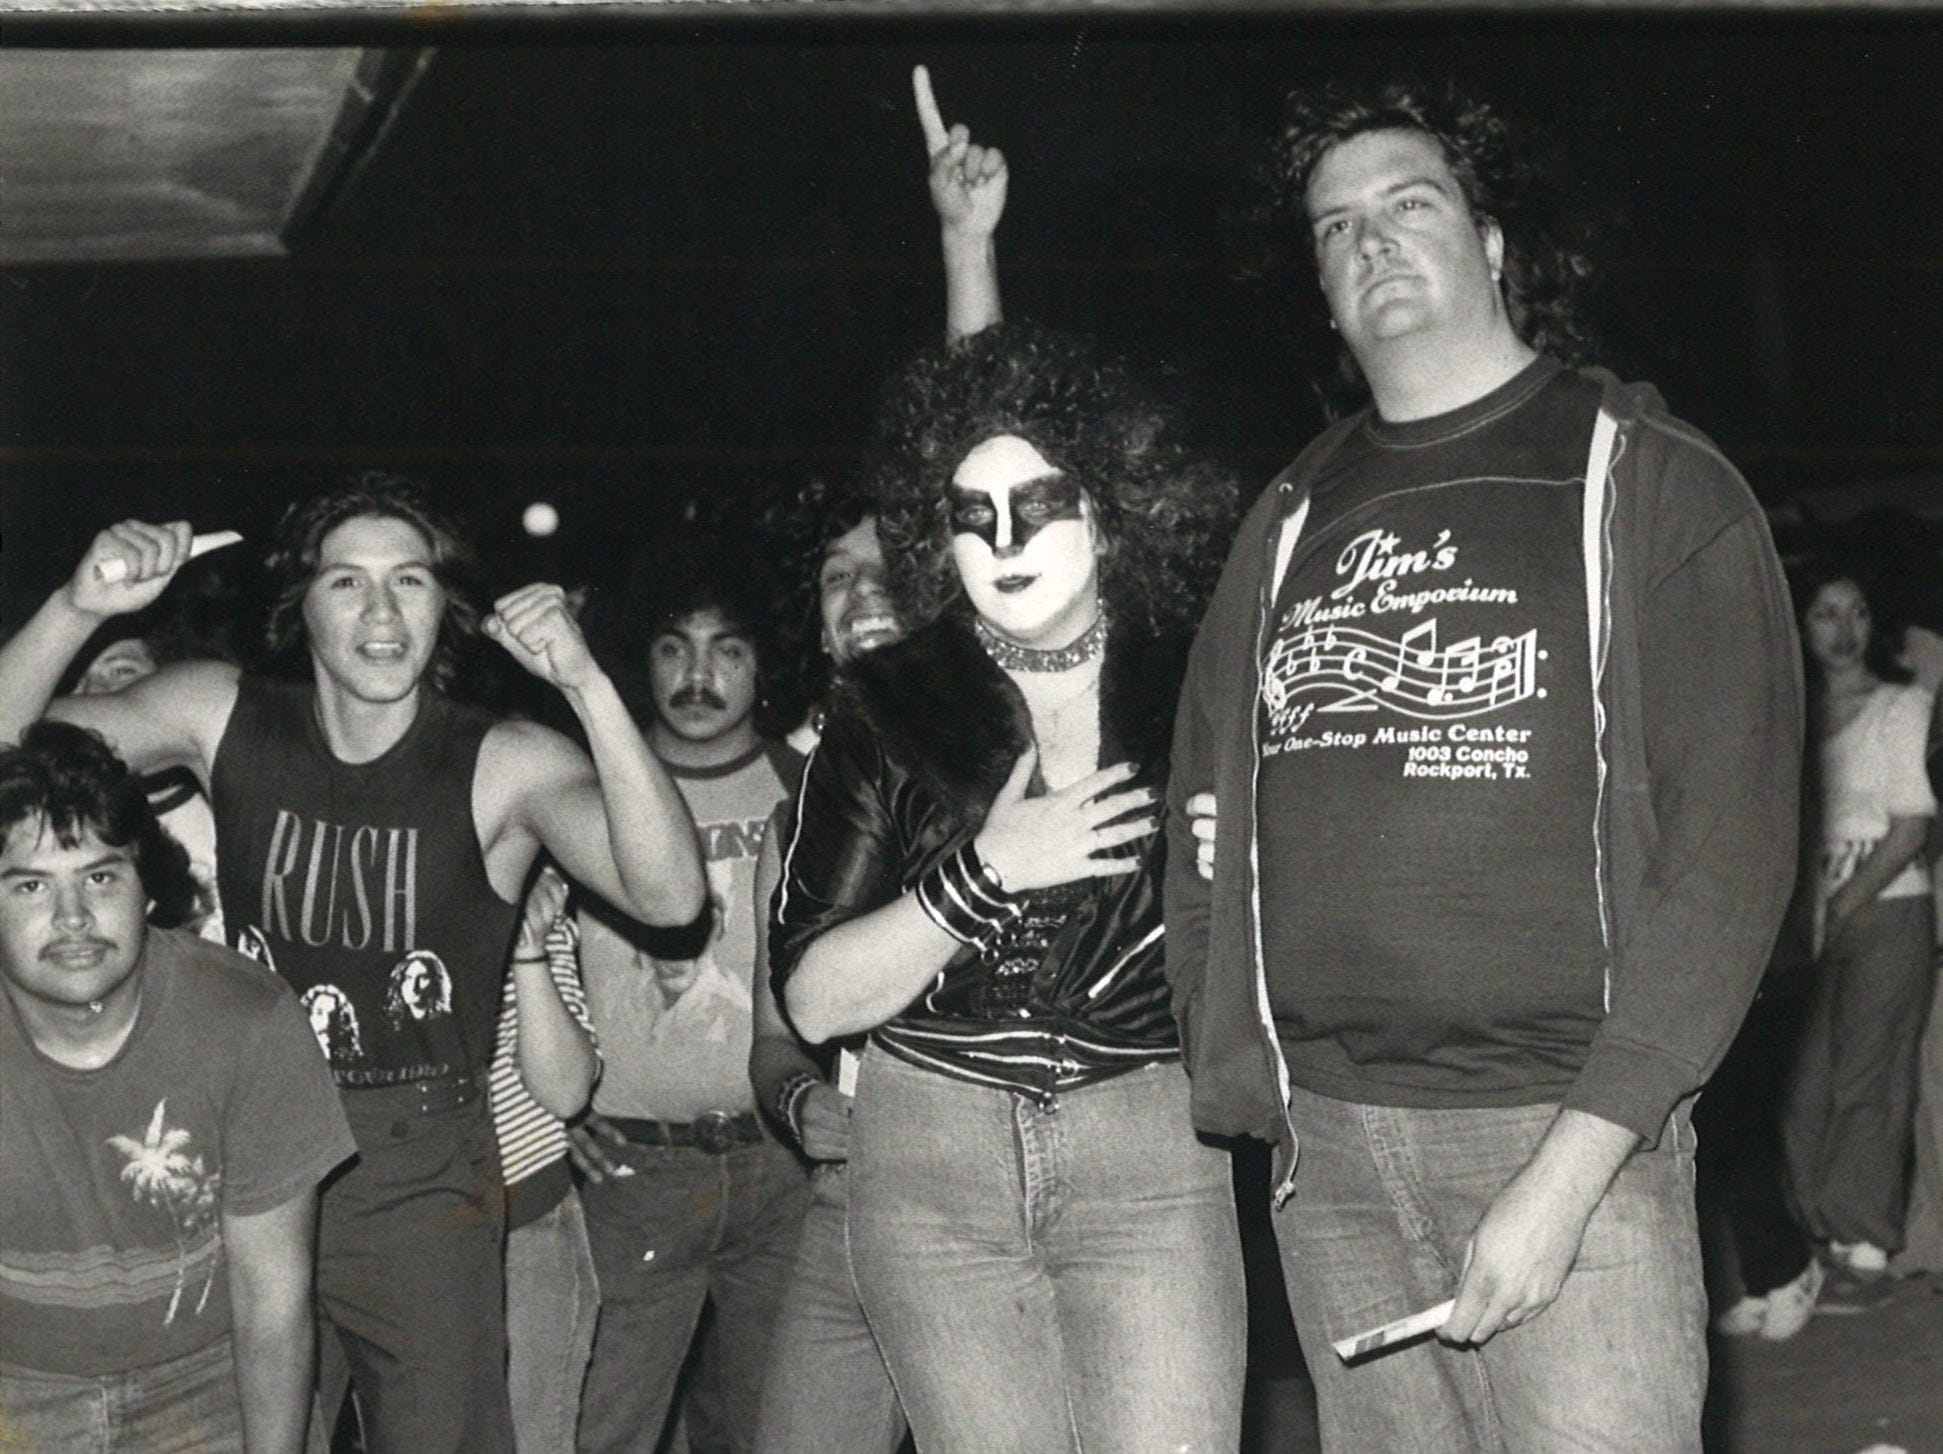 Some fans came in full Kiss regalia for the concert at Memorial Coliseum in Corpus Christi on March 14, 1983.